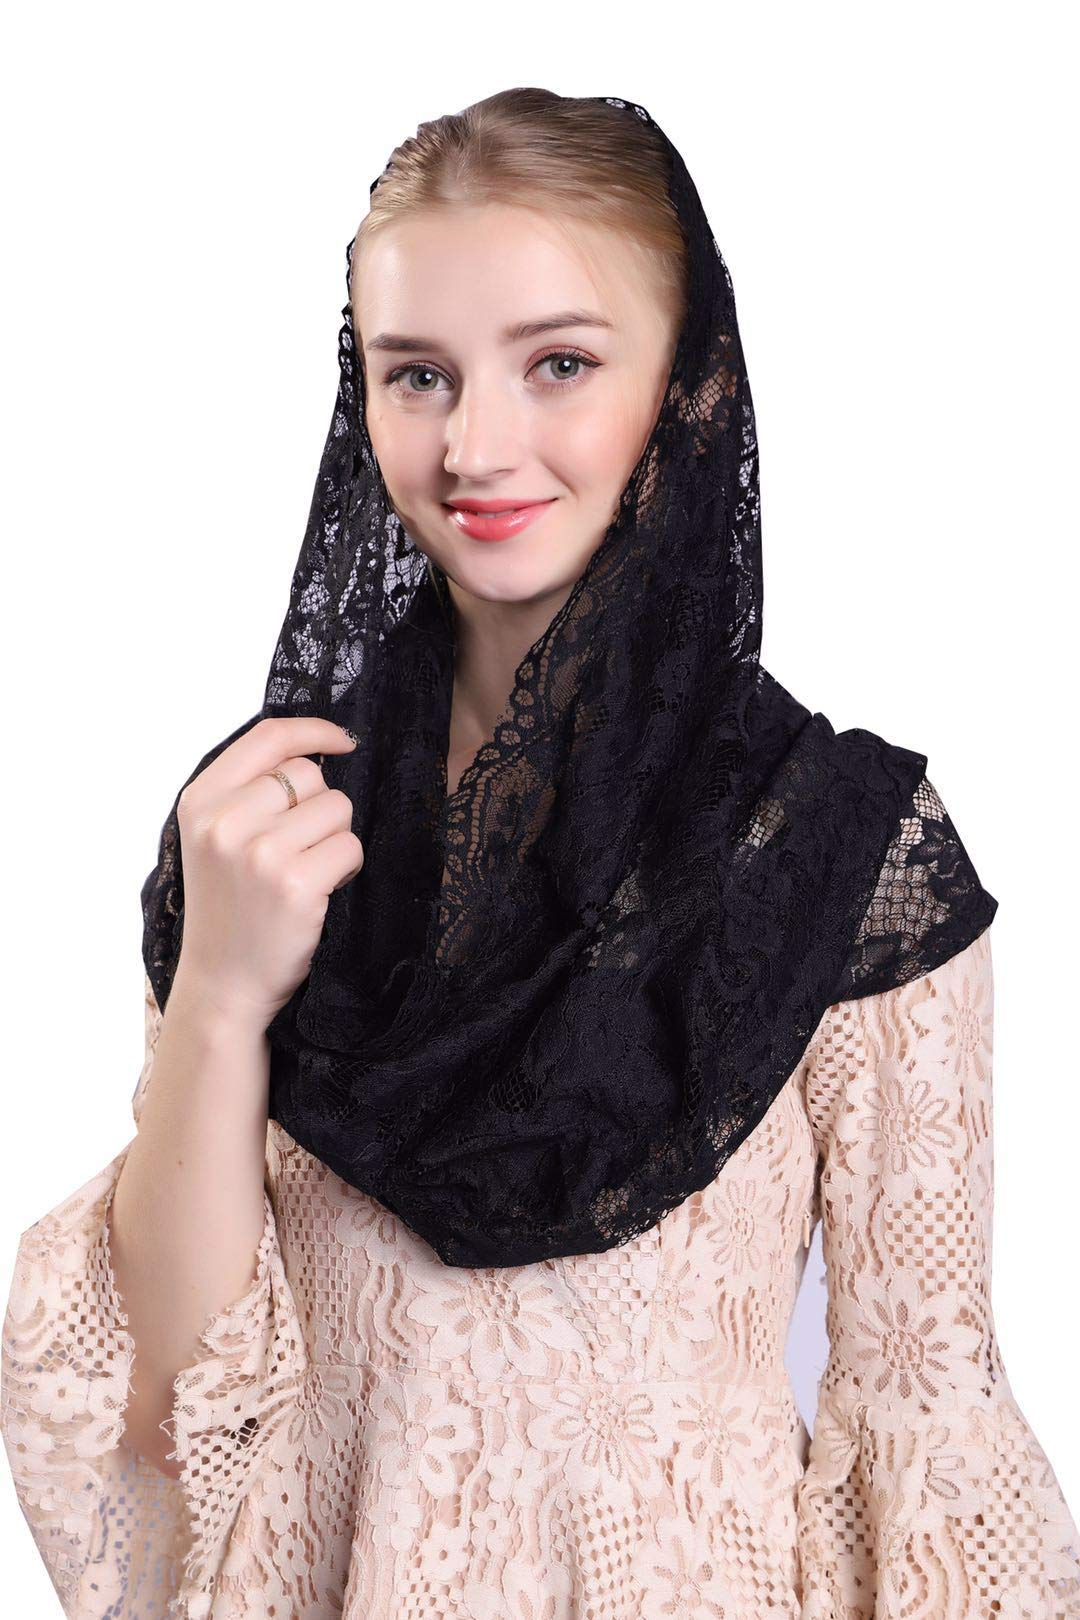 Soft and Comfortable Mantilla Veils Spanish Style Lace Infinity Veil Mantilla Latin (Black) by Czy accessories